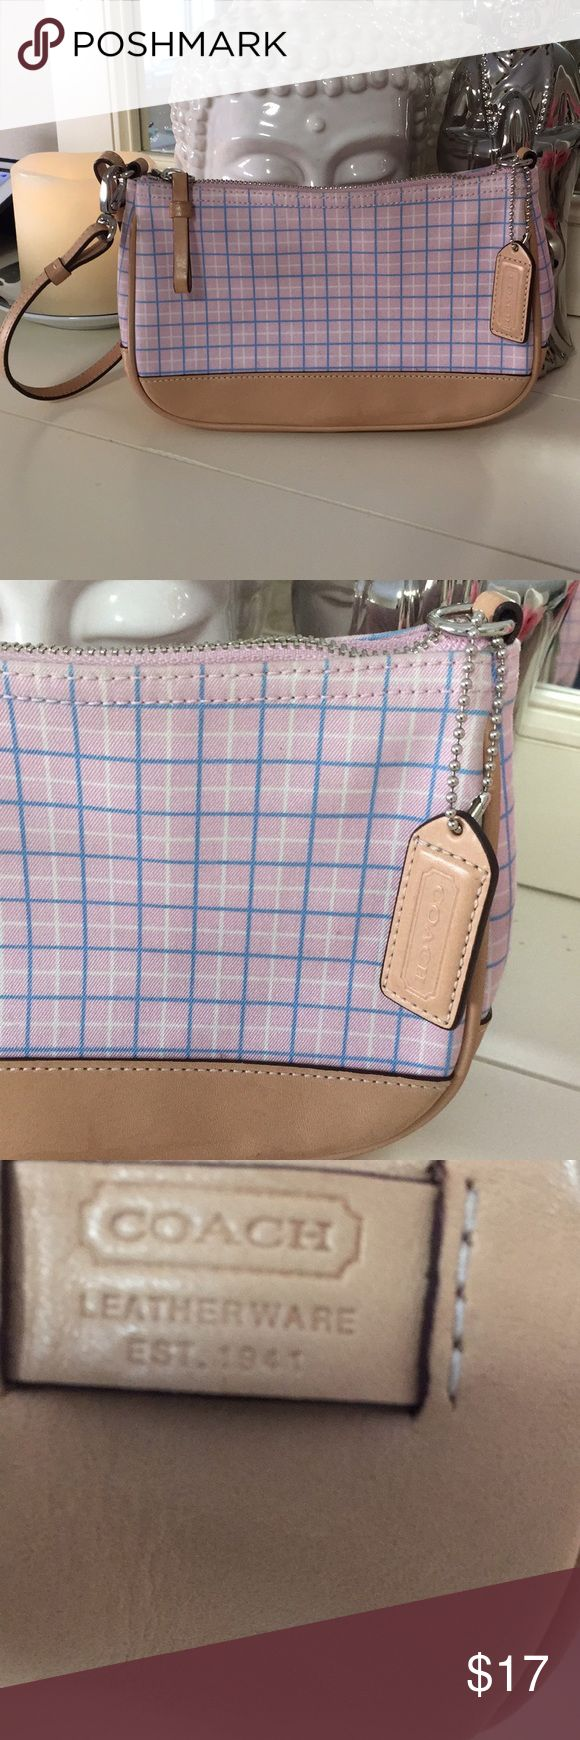 Coach plaid purse wristlet  with leather trim Coach plaid blush pink, blue and white plaid with beige trim leather. The strap can clip to one side or clip on to wear as purse. This Coach purse measures 8 1/4 inches across, 5 1/4 inches high and 2 1/4 inches wide Coach Bags Clutches & Wristlets